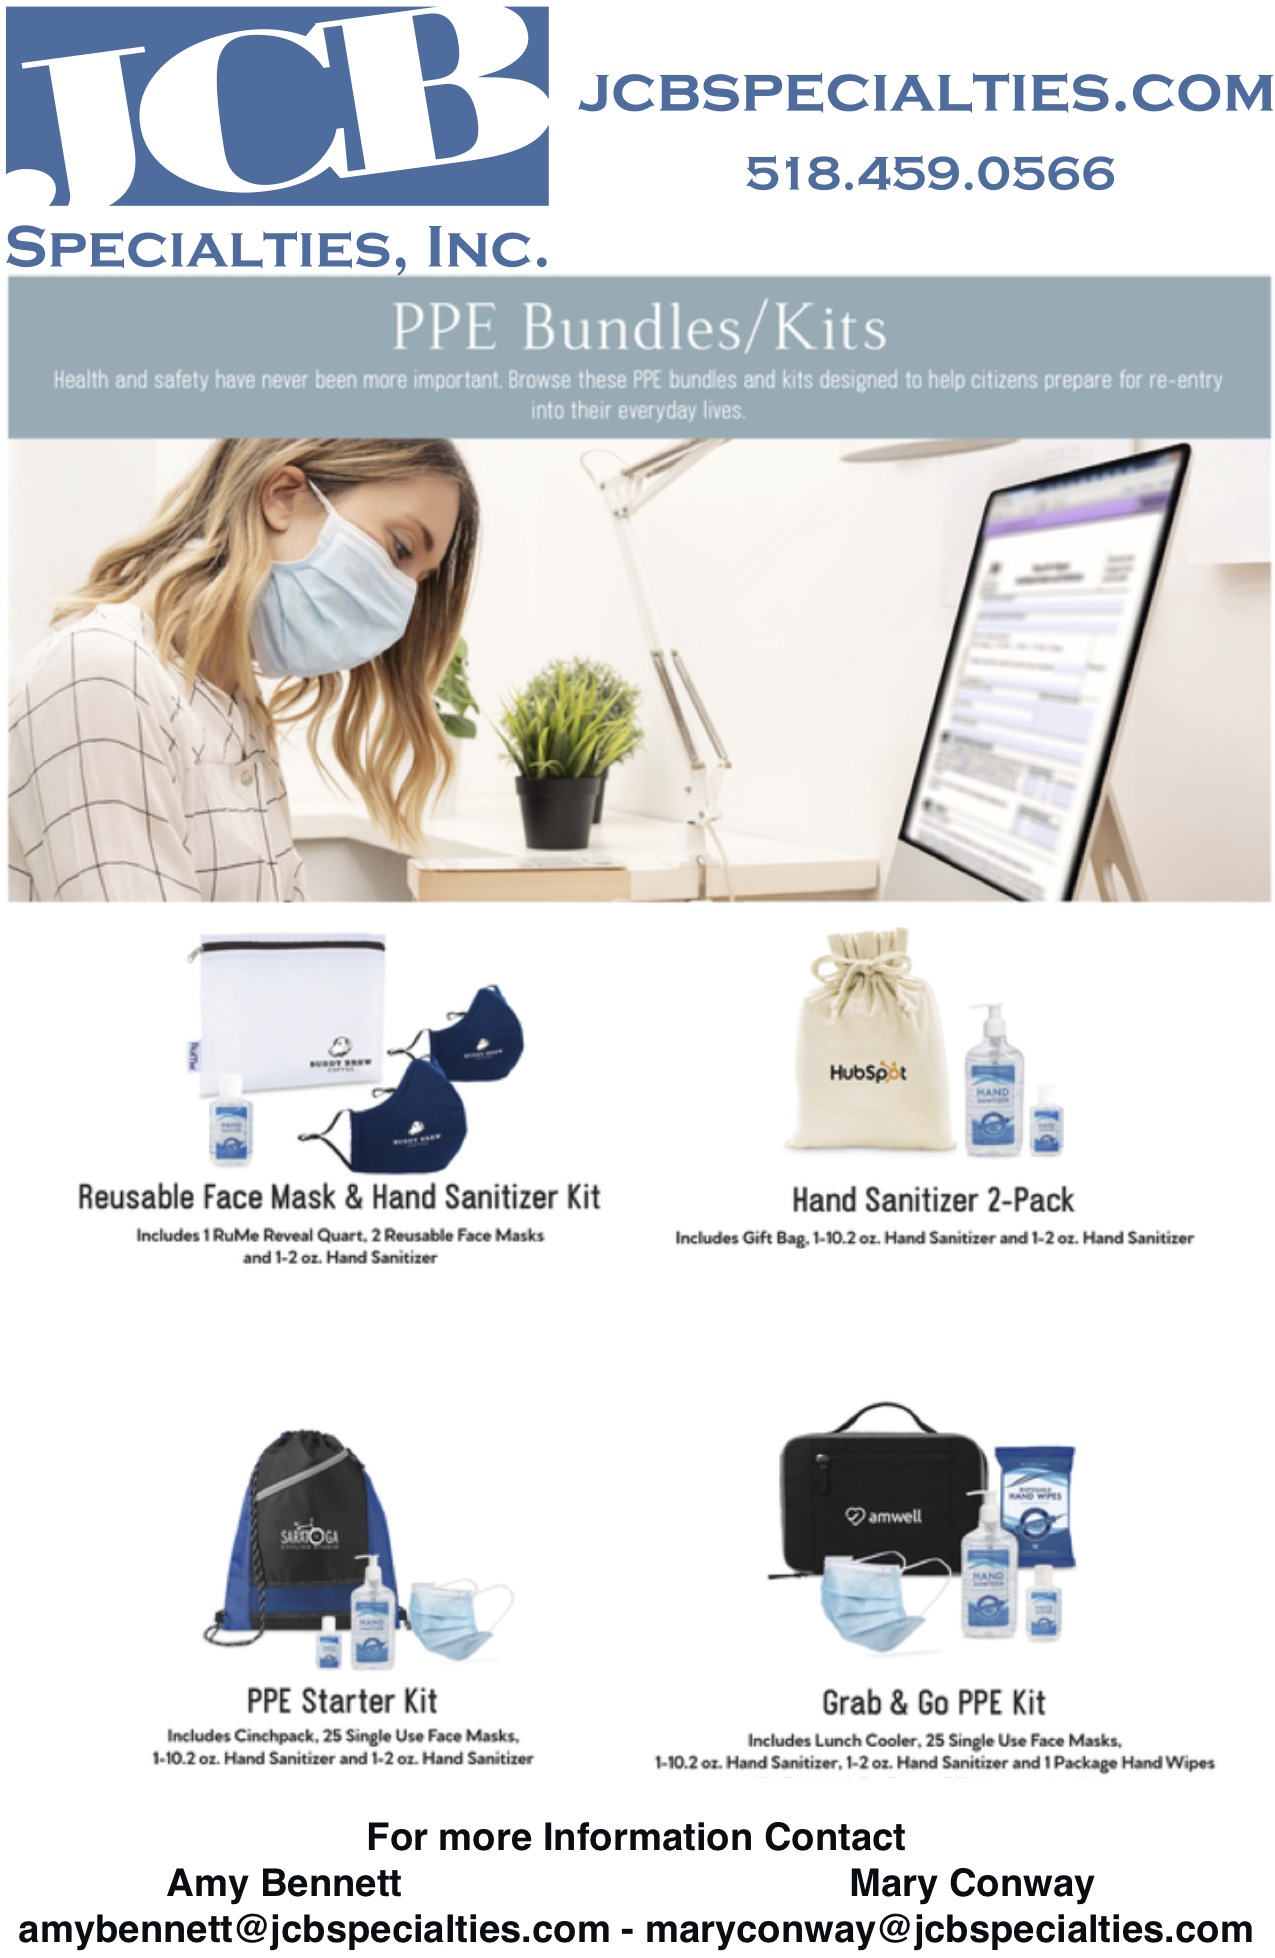 PPE-Bundles-copy-1